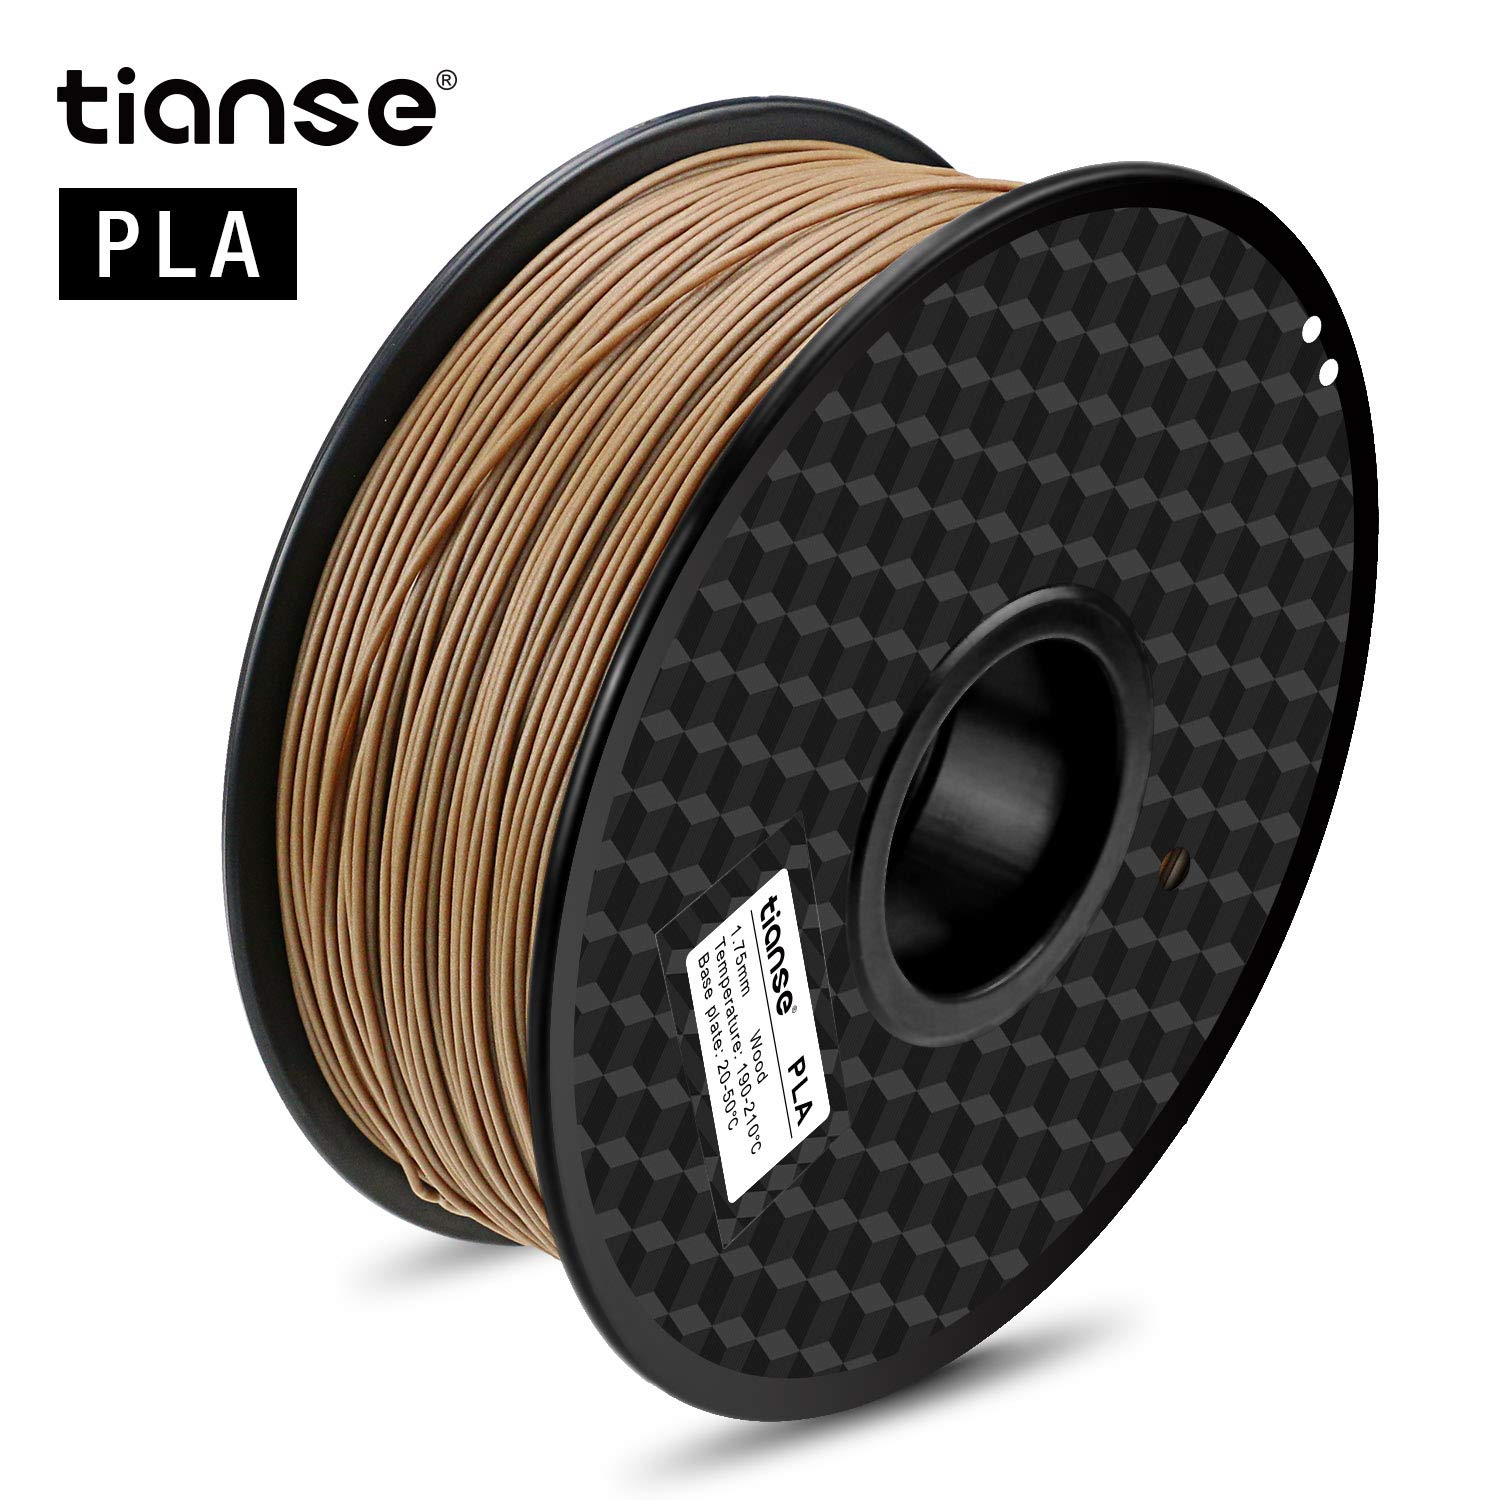 3d Printer Consumables Black Computers/tablets & Networking Sporting New Amazon Basics 3d Printer Filament 1 Kg 1.75mm Abs